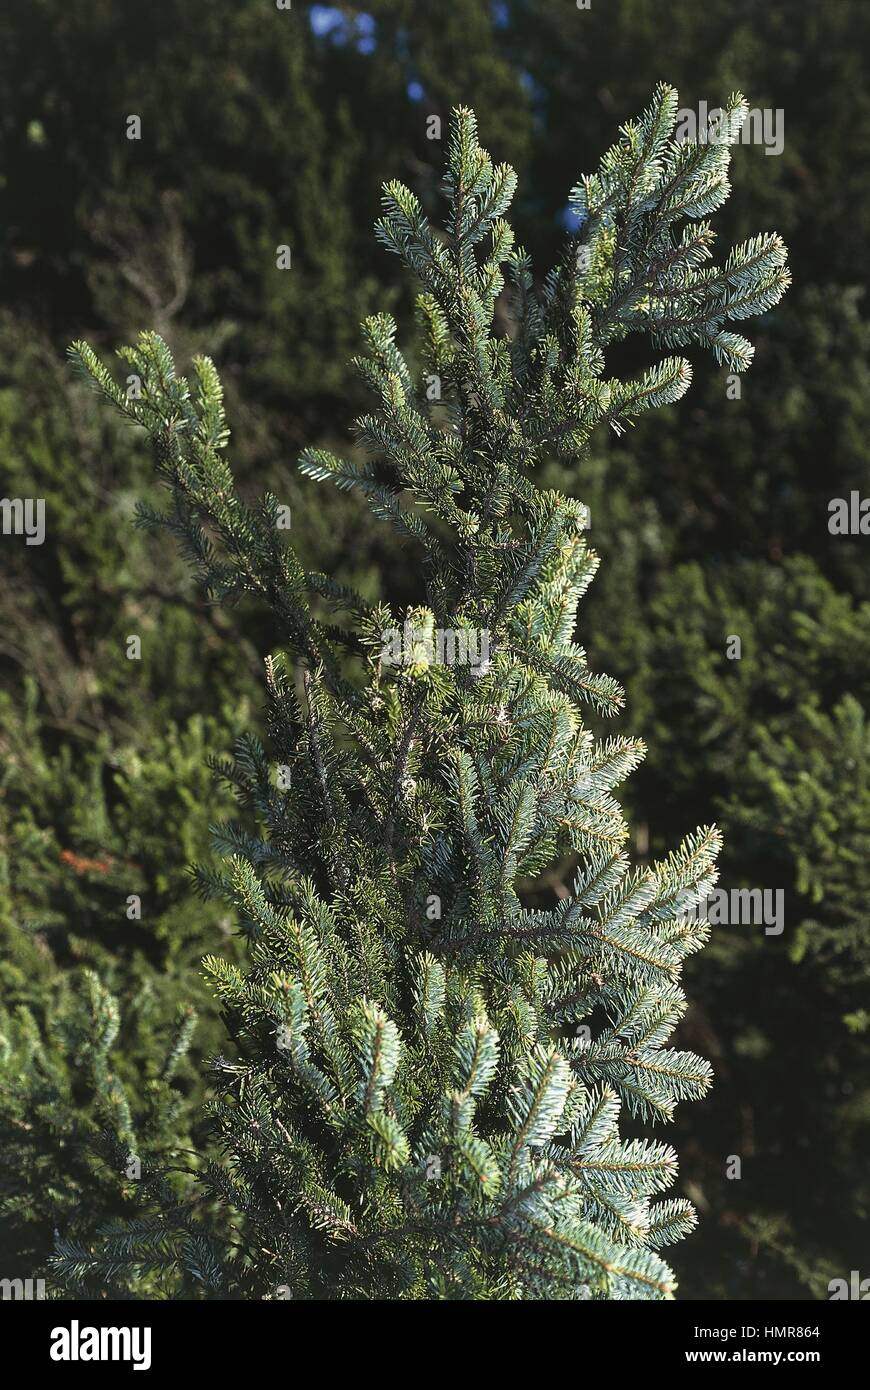 Botany - Pinaceae. Silver fir (Abies alba), Needles. Mount Falterona, Campigna and Casentino forests National Park, - Stock Image